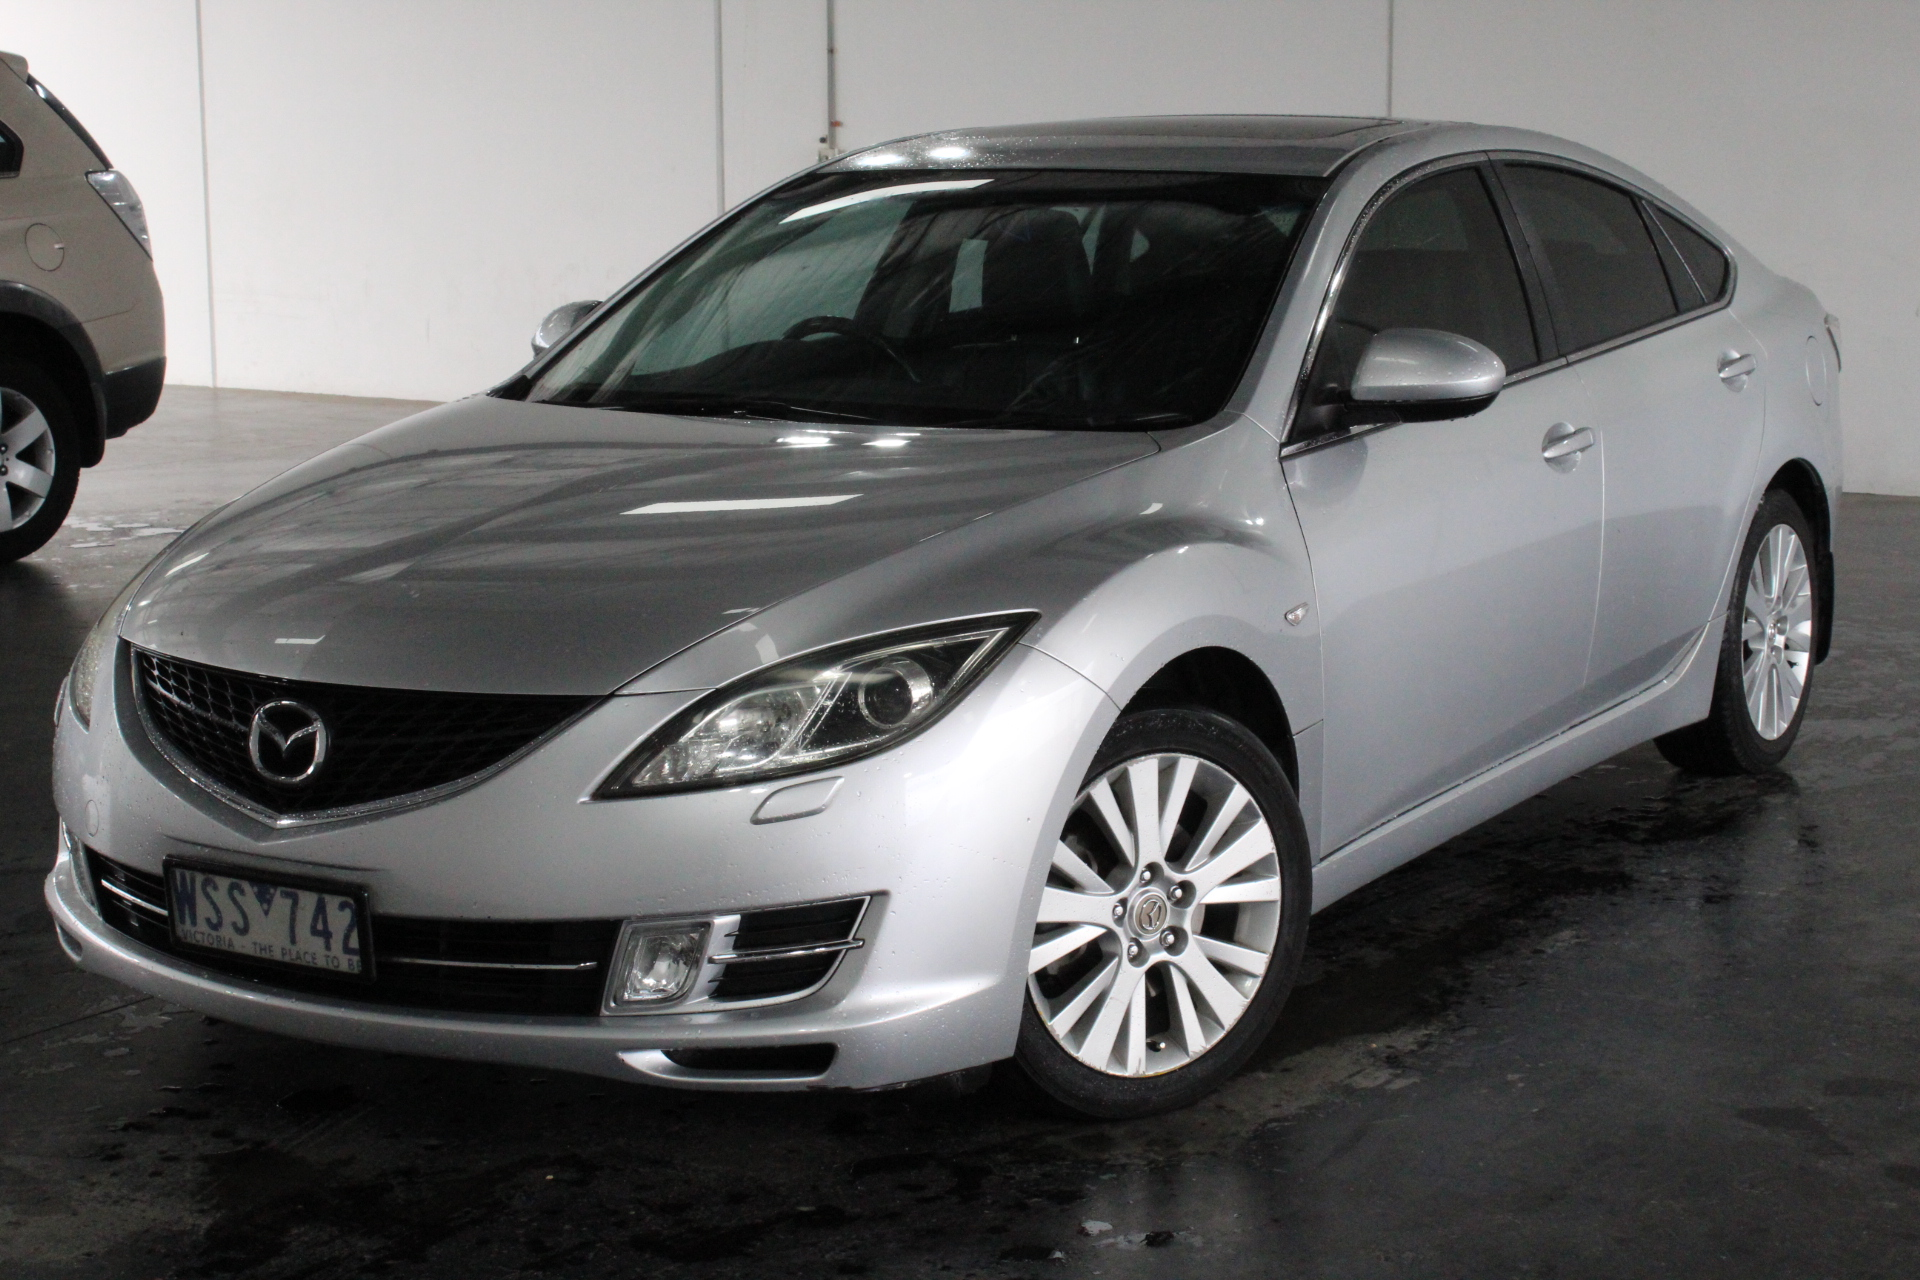 2008 Mazda 6 Luxury GH Automatic Hatchback